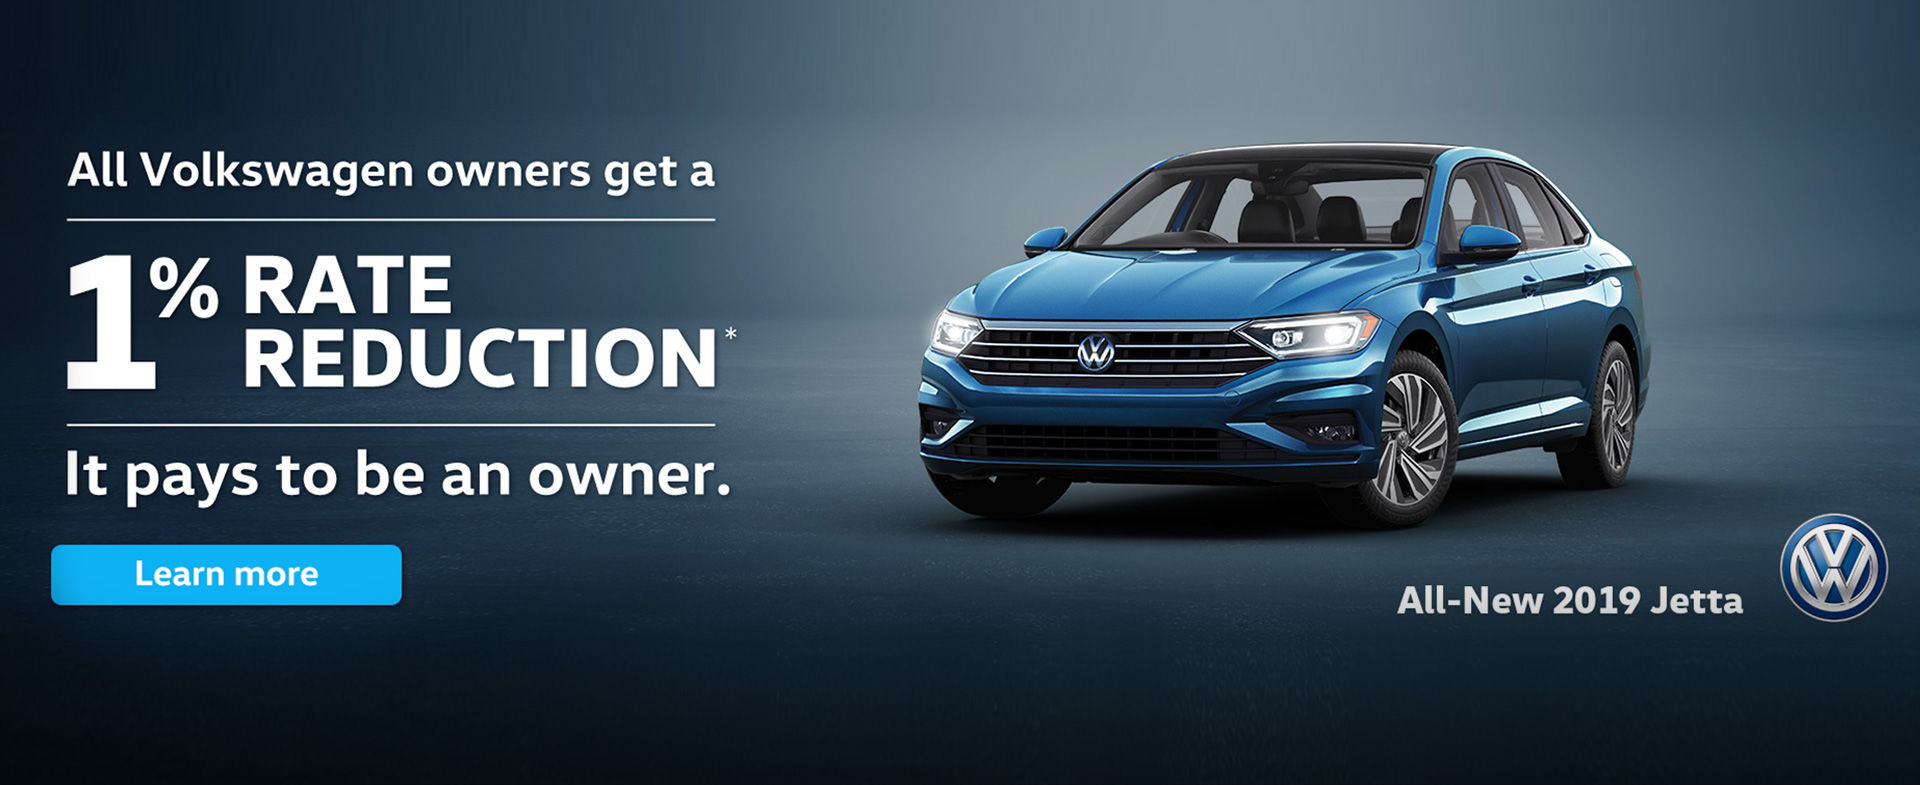 1% Rate Reduction on Jetta - November